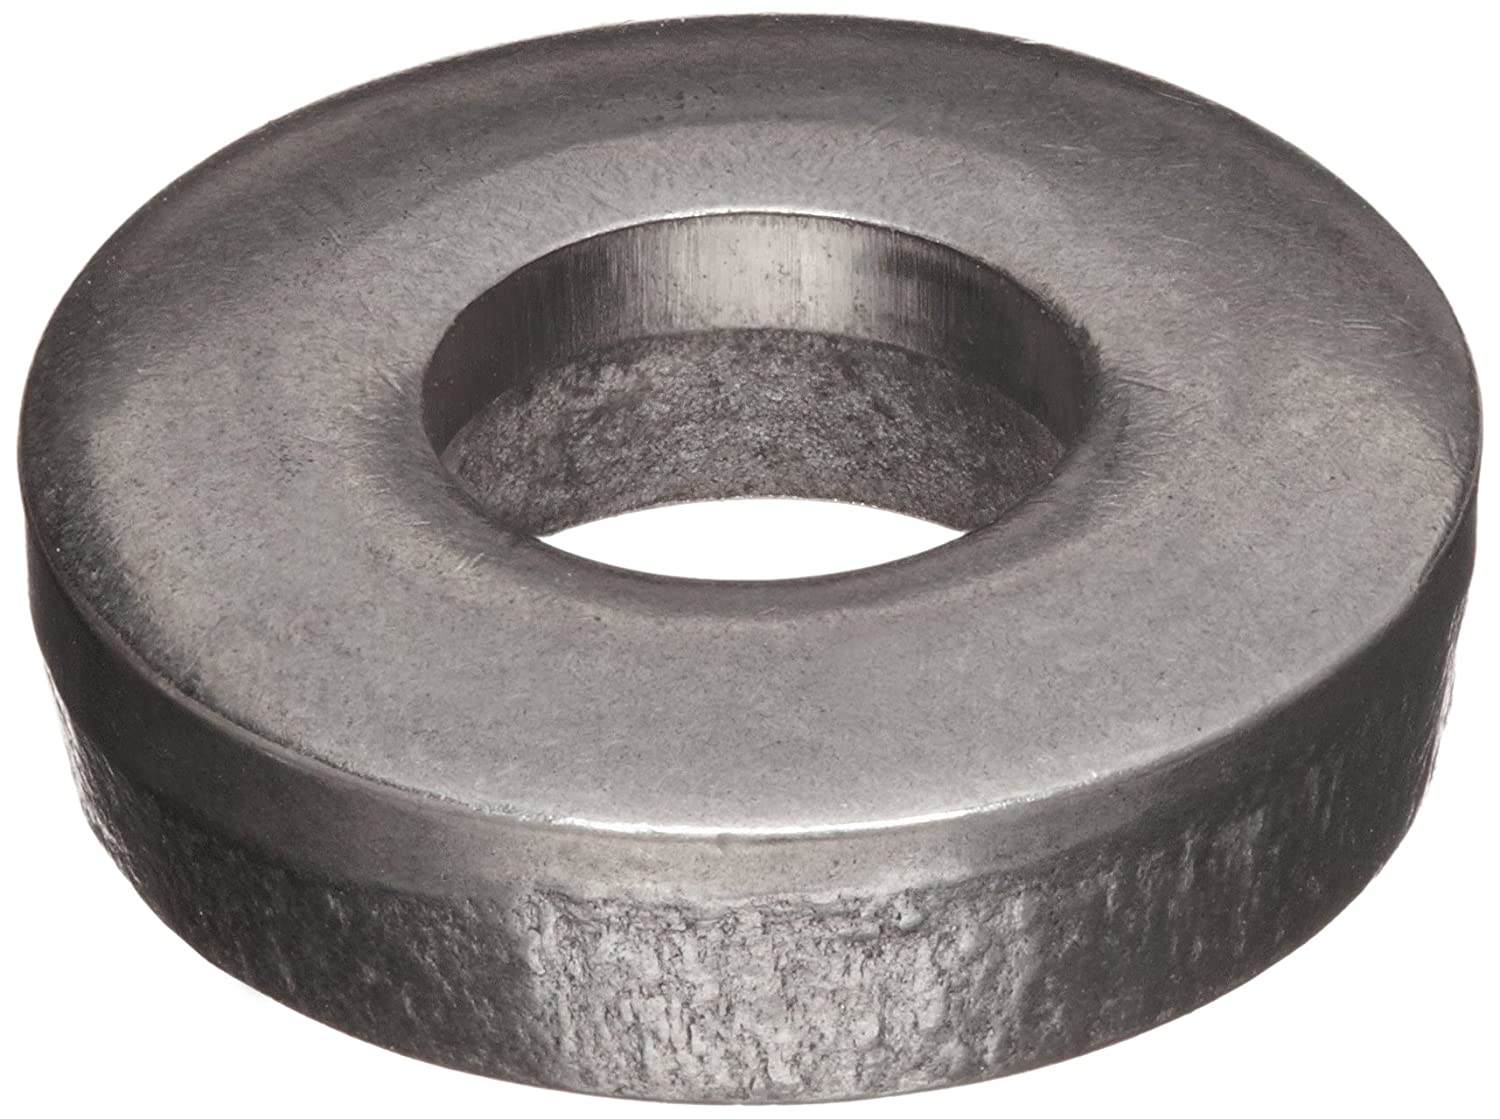 0.406 ID Pack of 5 0.406 ID 0.875 OD 0.125 Nominal Thickness Accurate Manufacturing Z9097SS 0.875 OD #1 Hole Size Made in US 18-8 Stainless Steel Flat Washer 0.125 Nominal Thickness